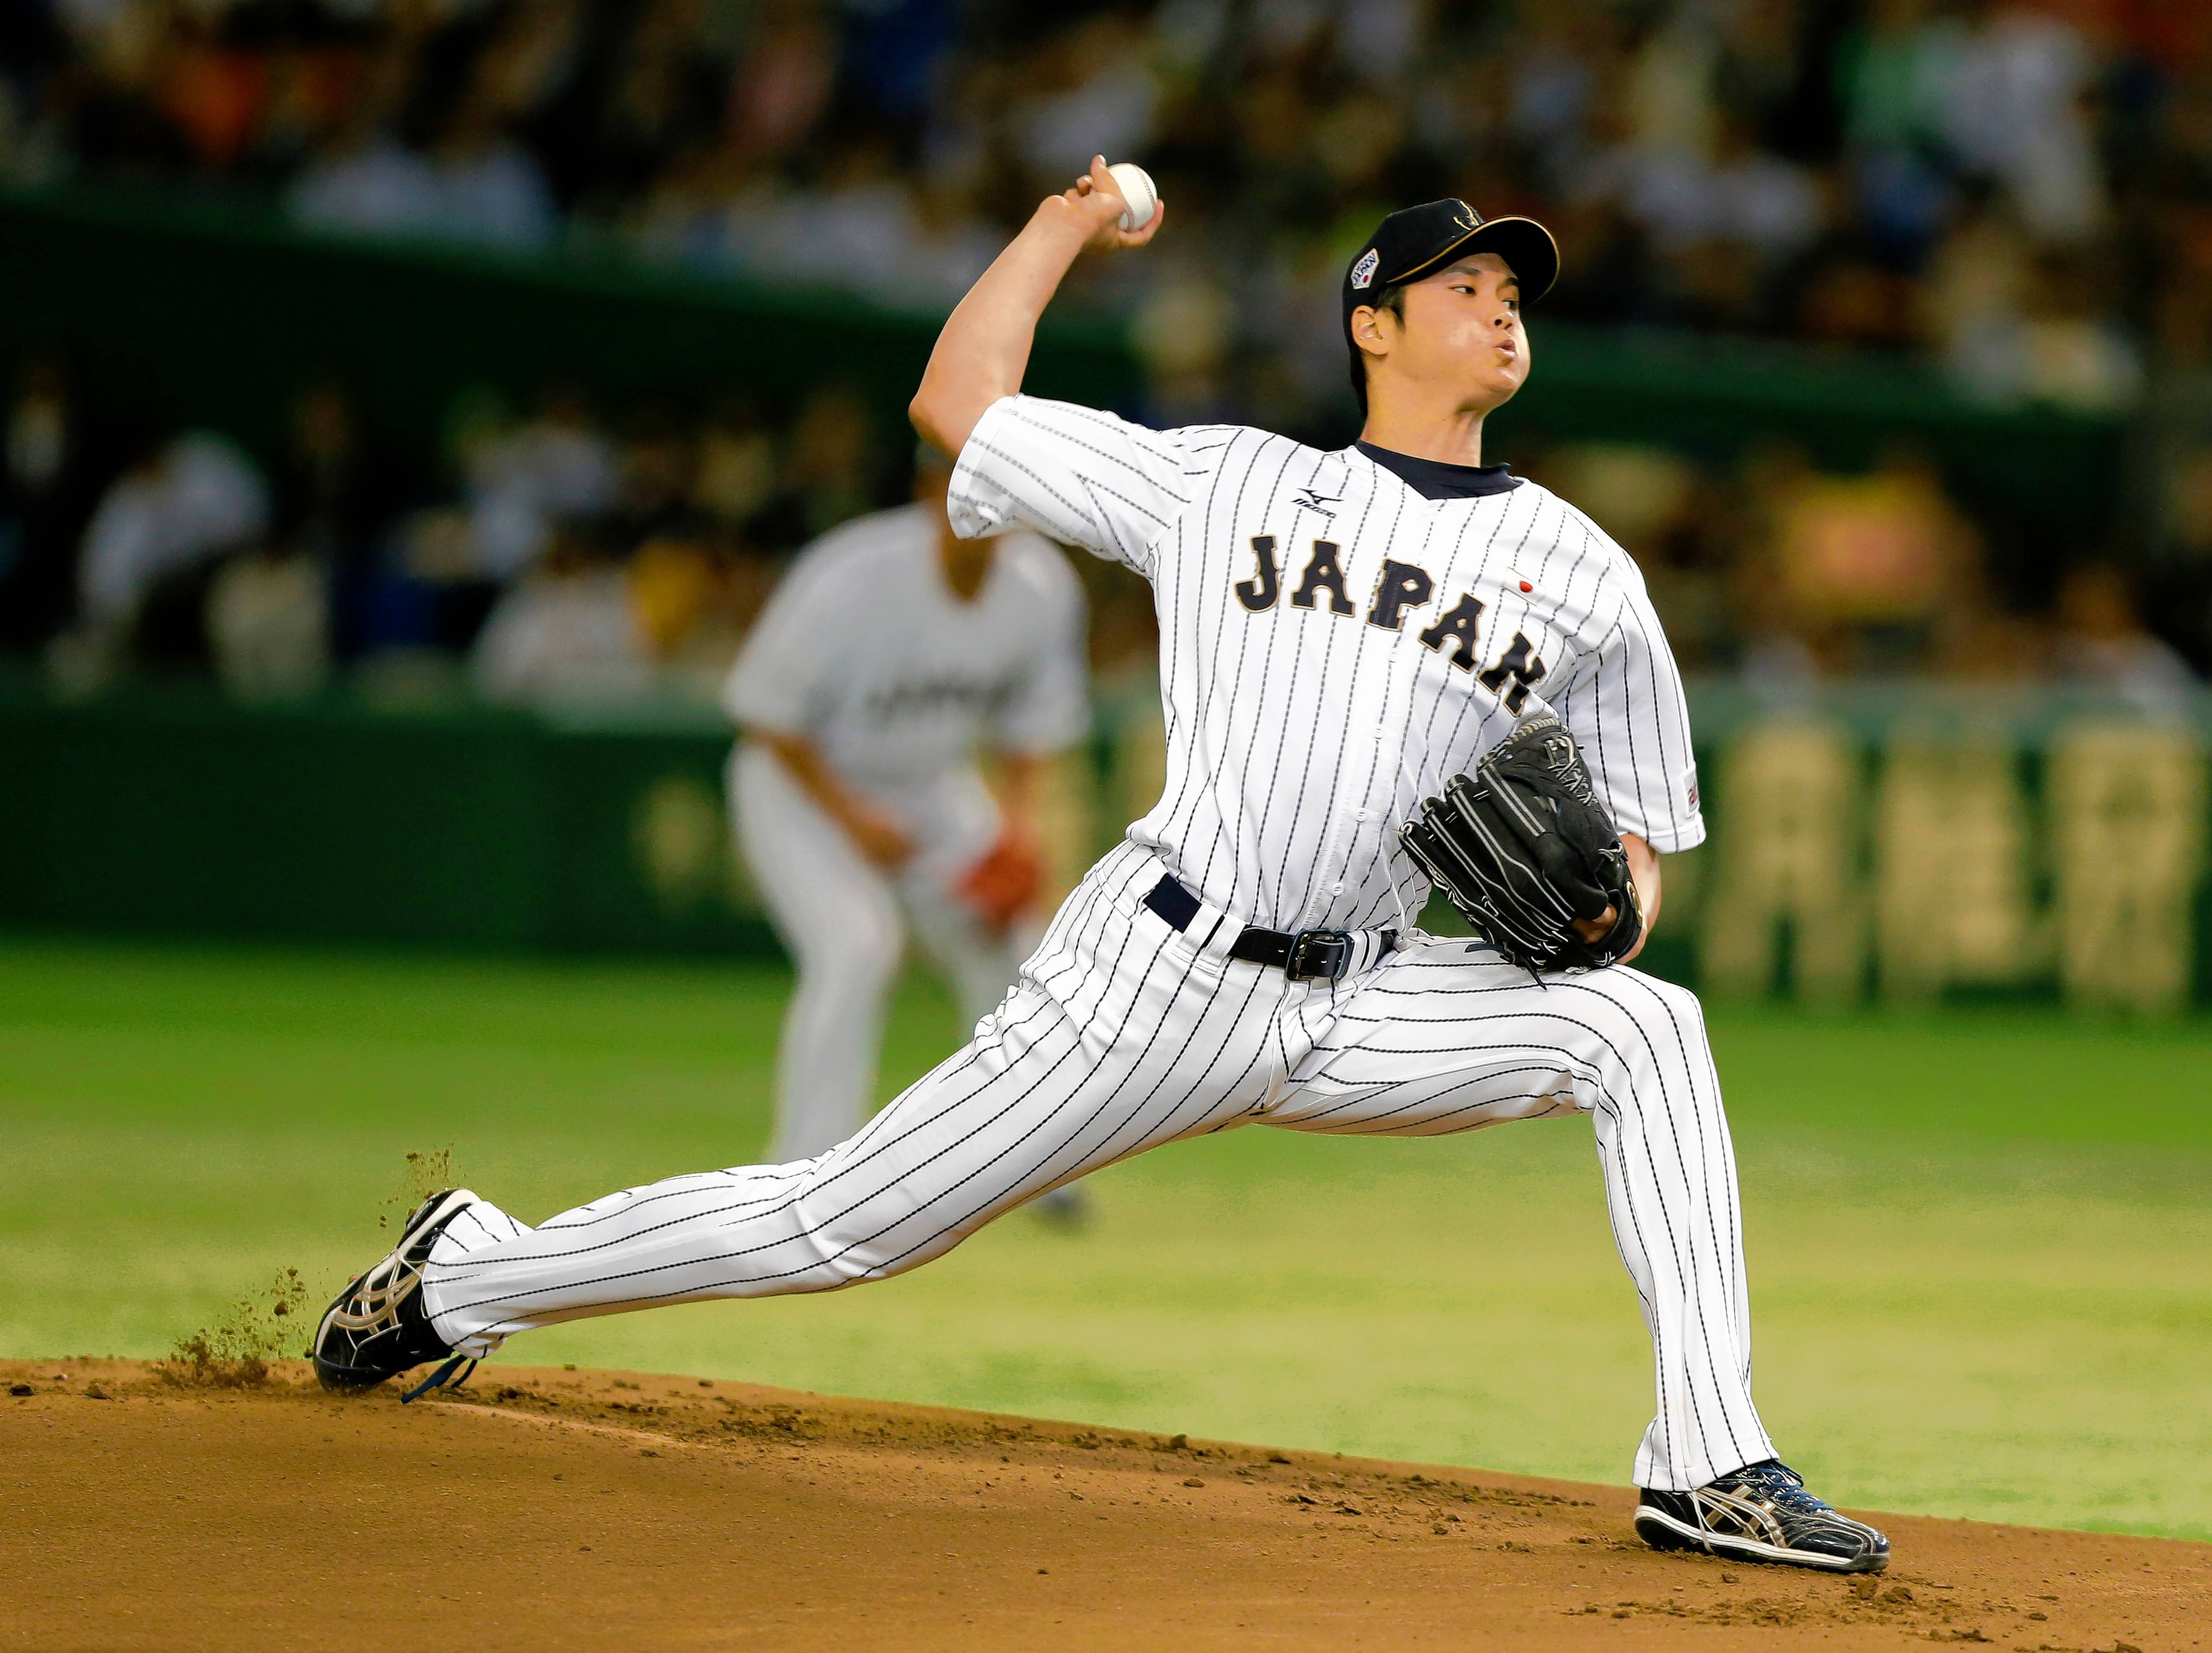 To sign Japan's Ohtani, Chicago Cubs have lots of selling points to offer